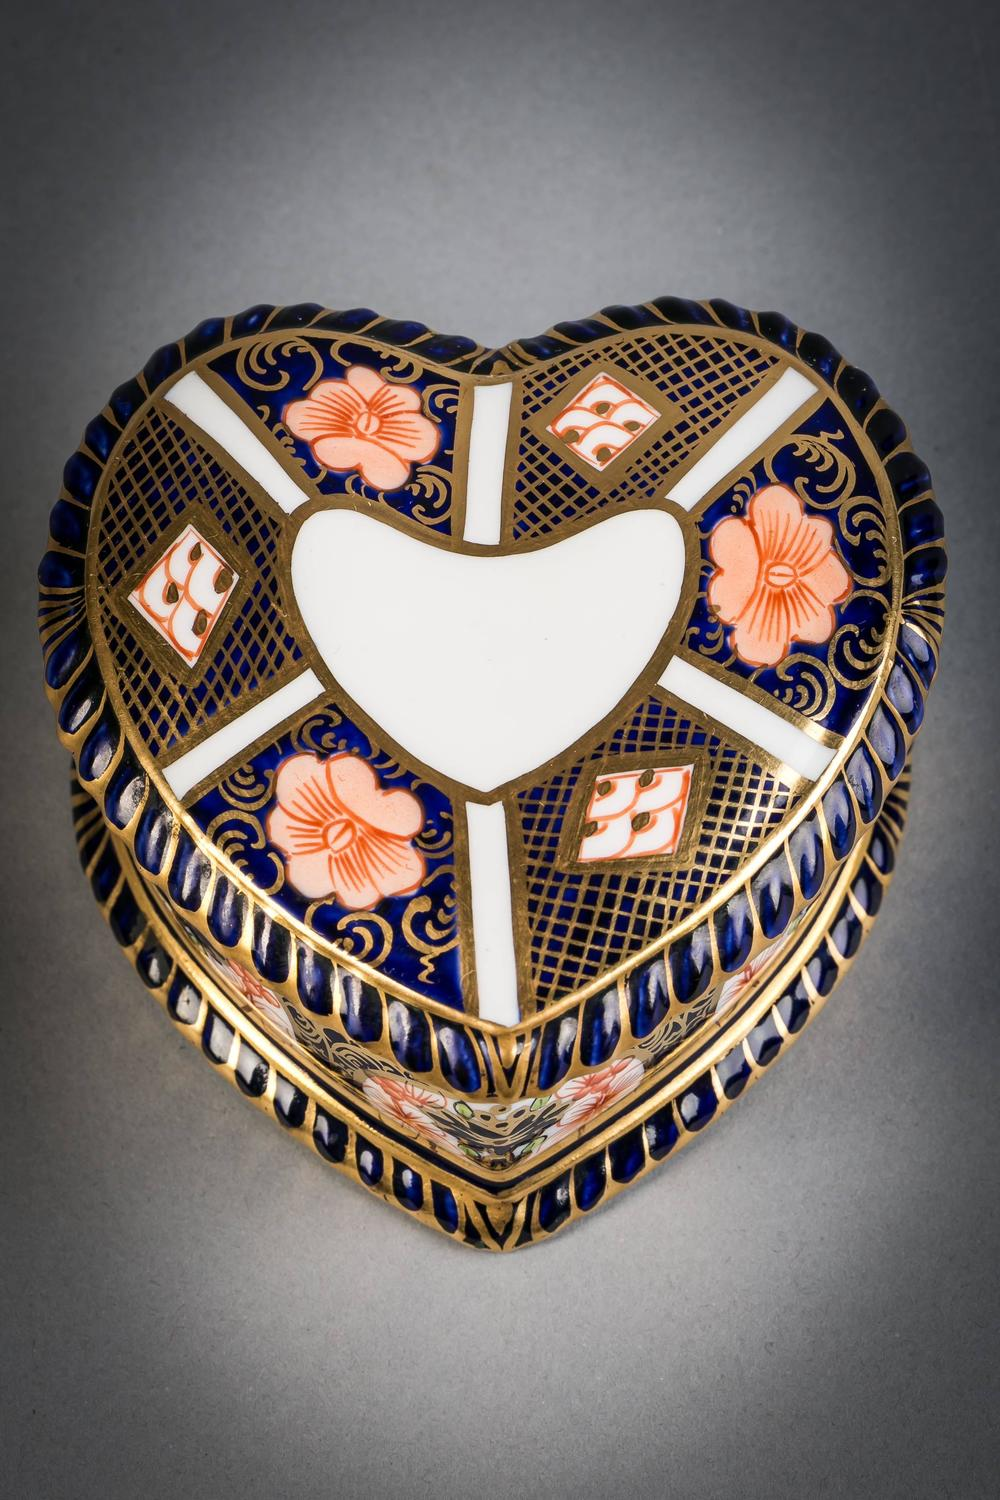 Royal Crown Derby Heart Shaped Box circa 1910 For Sale at